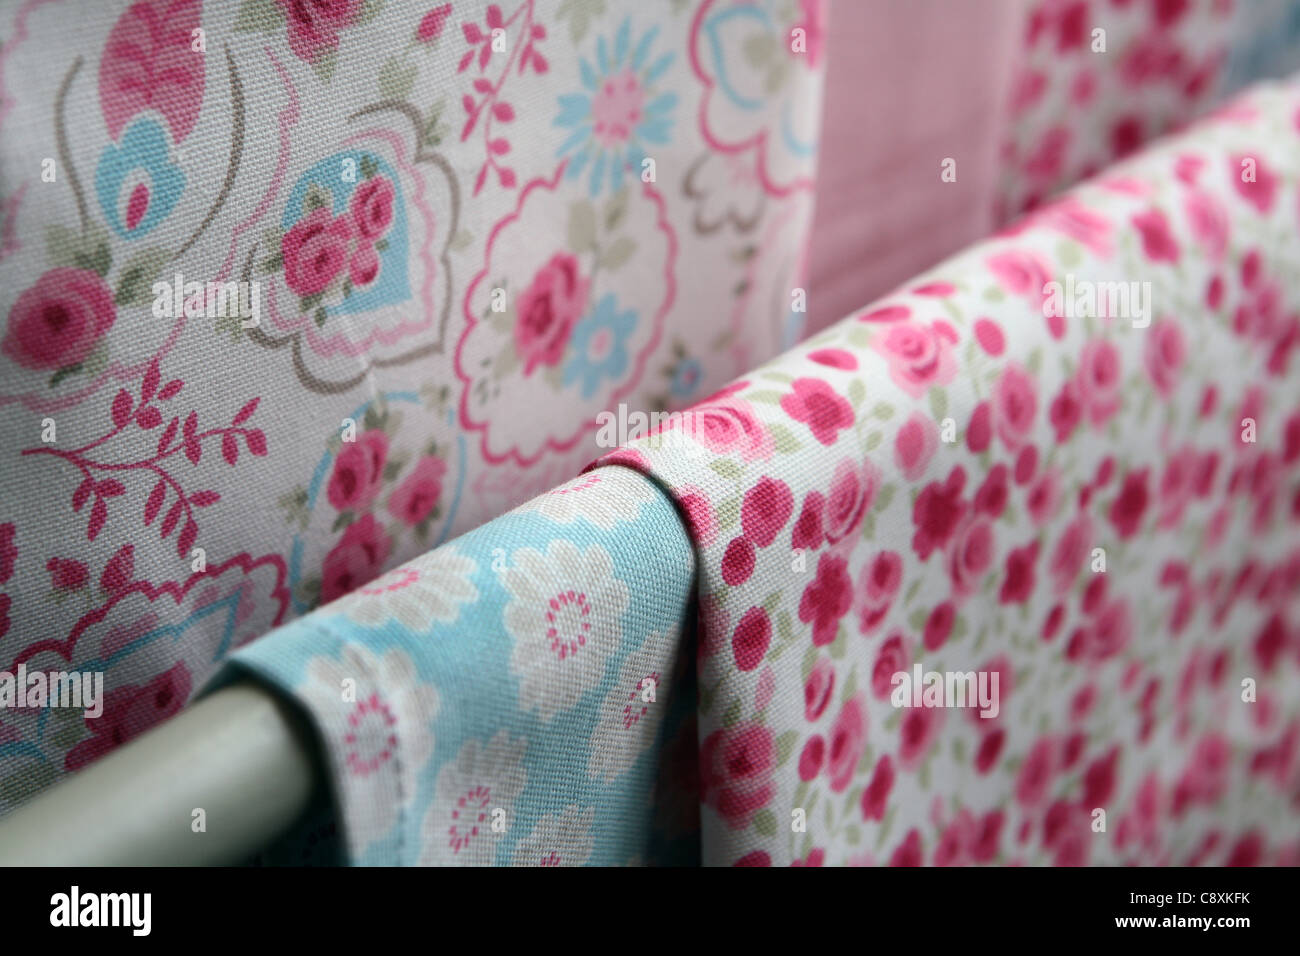 Printed textiles. - Stock Image